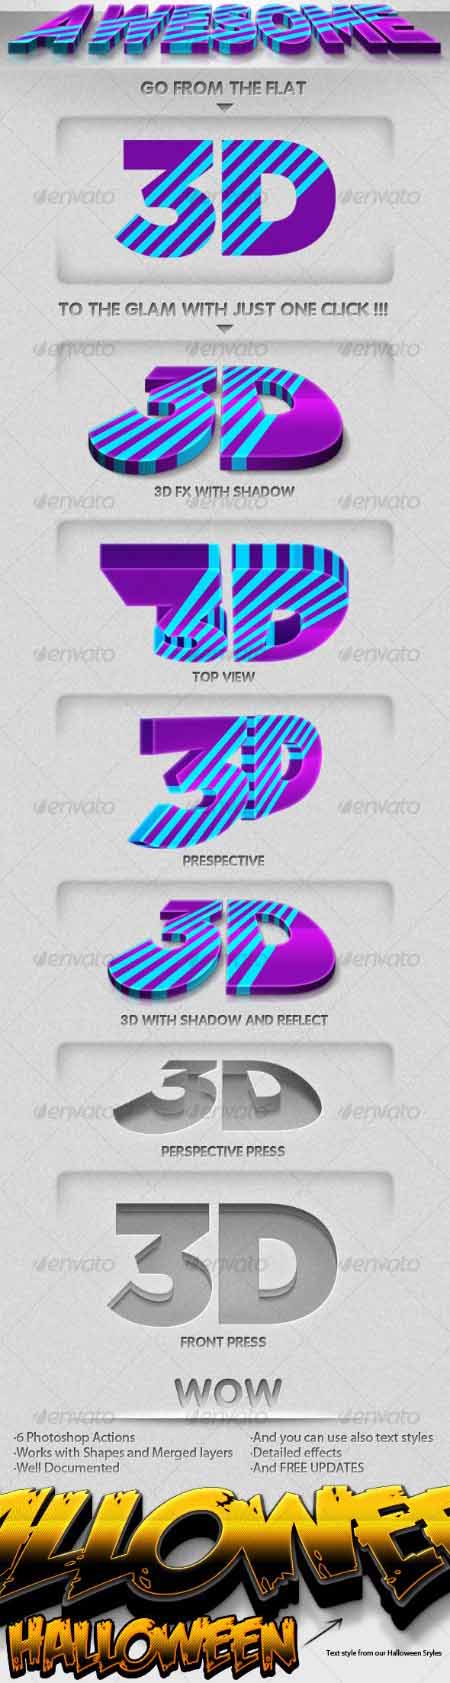 3D Generator - PS Actions GraphicRiver